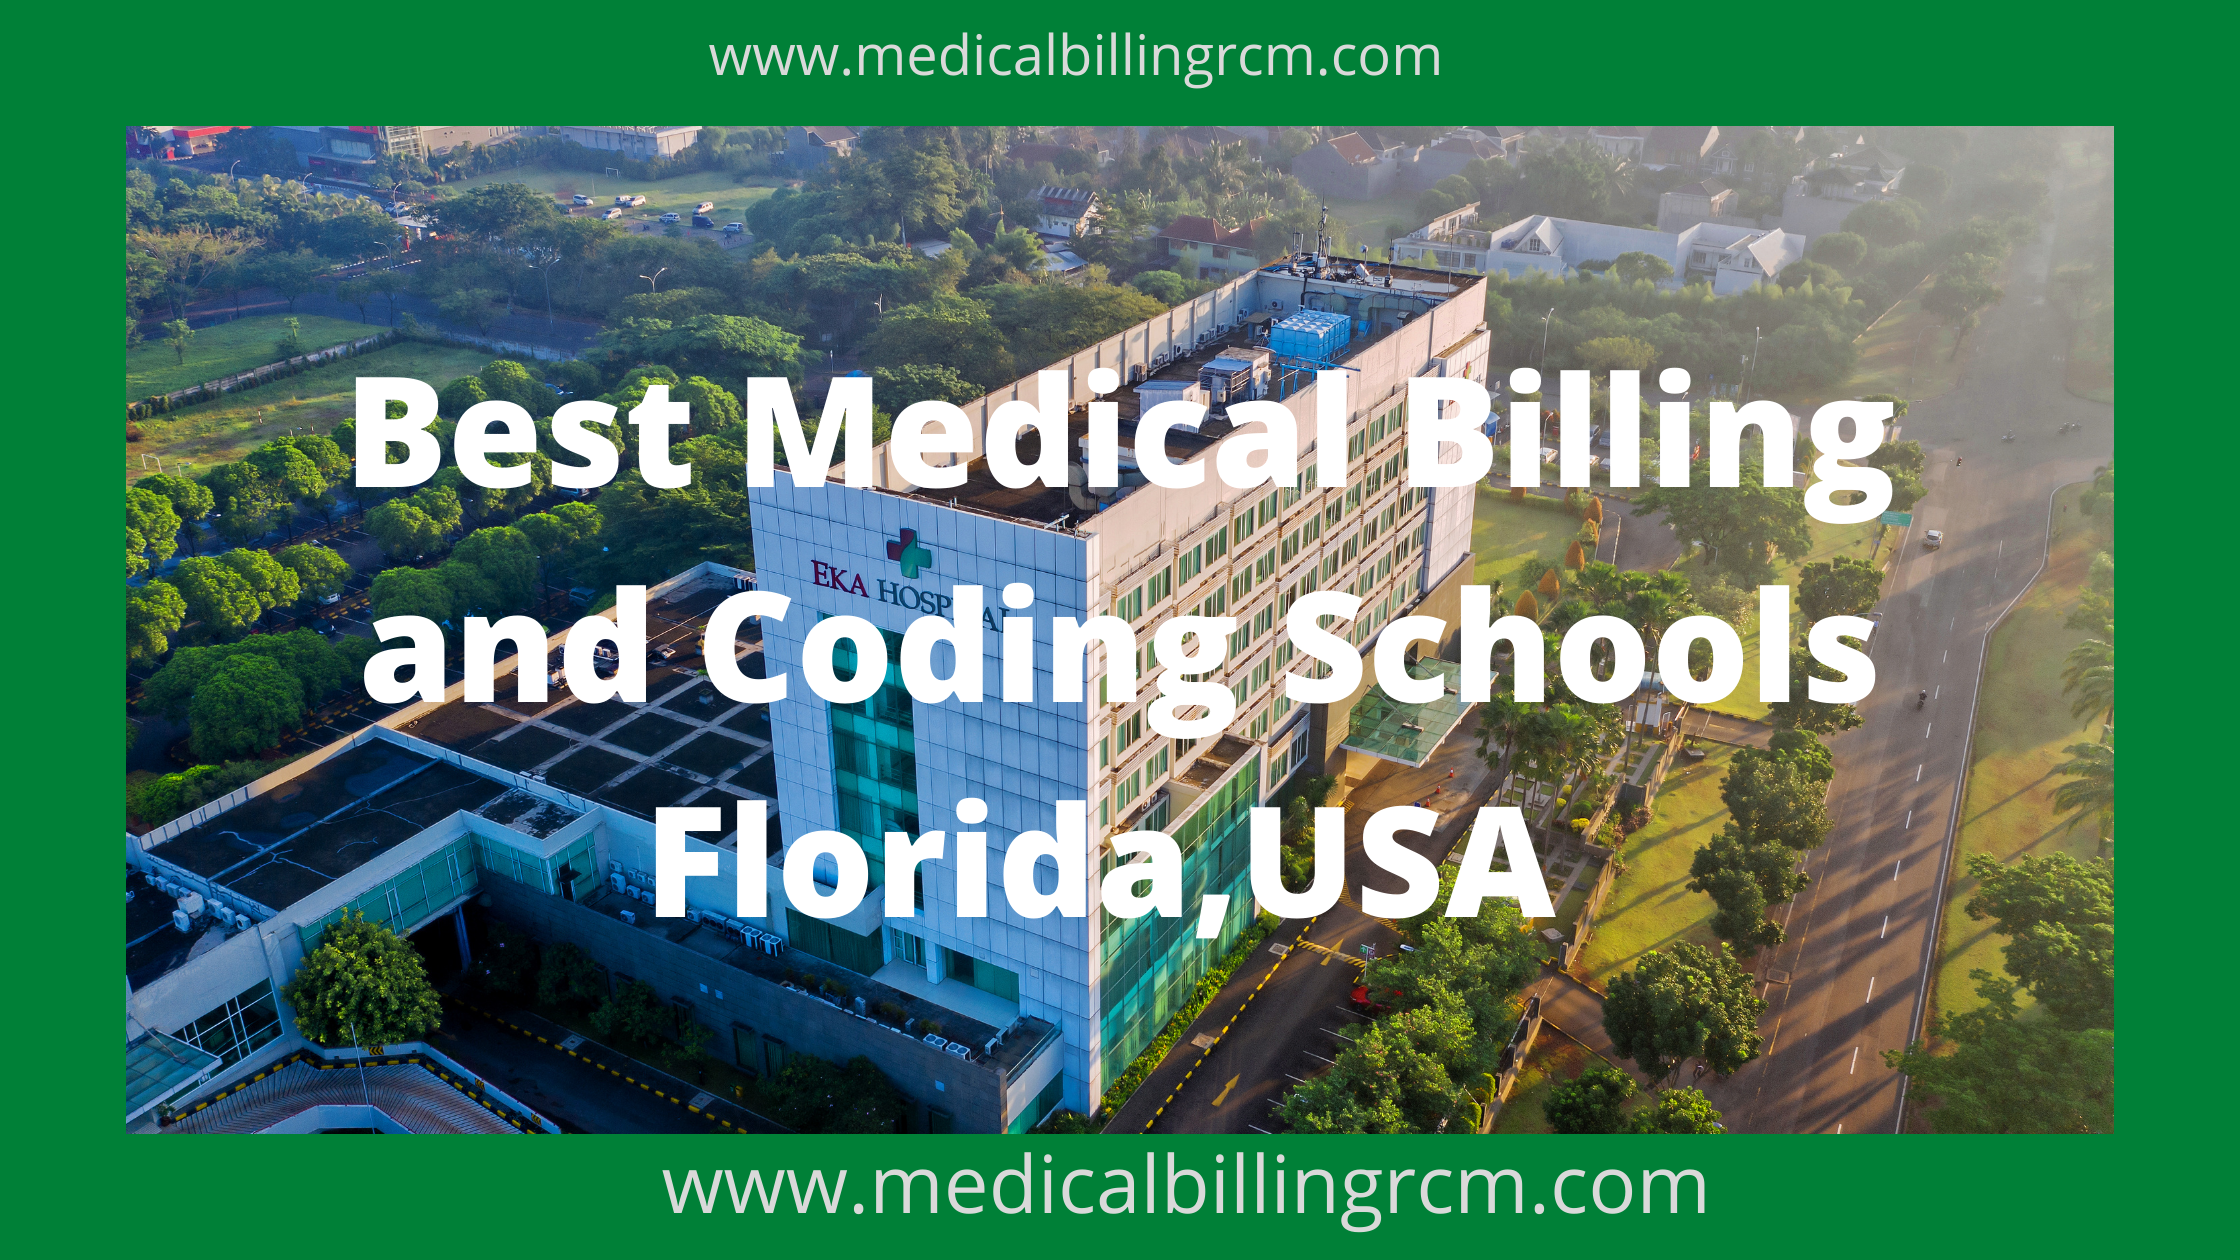 best accredited medical billing and coding schools in florida, USA